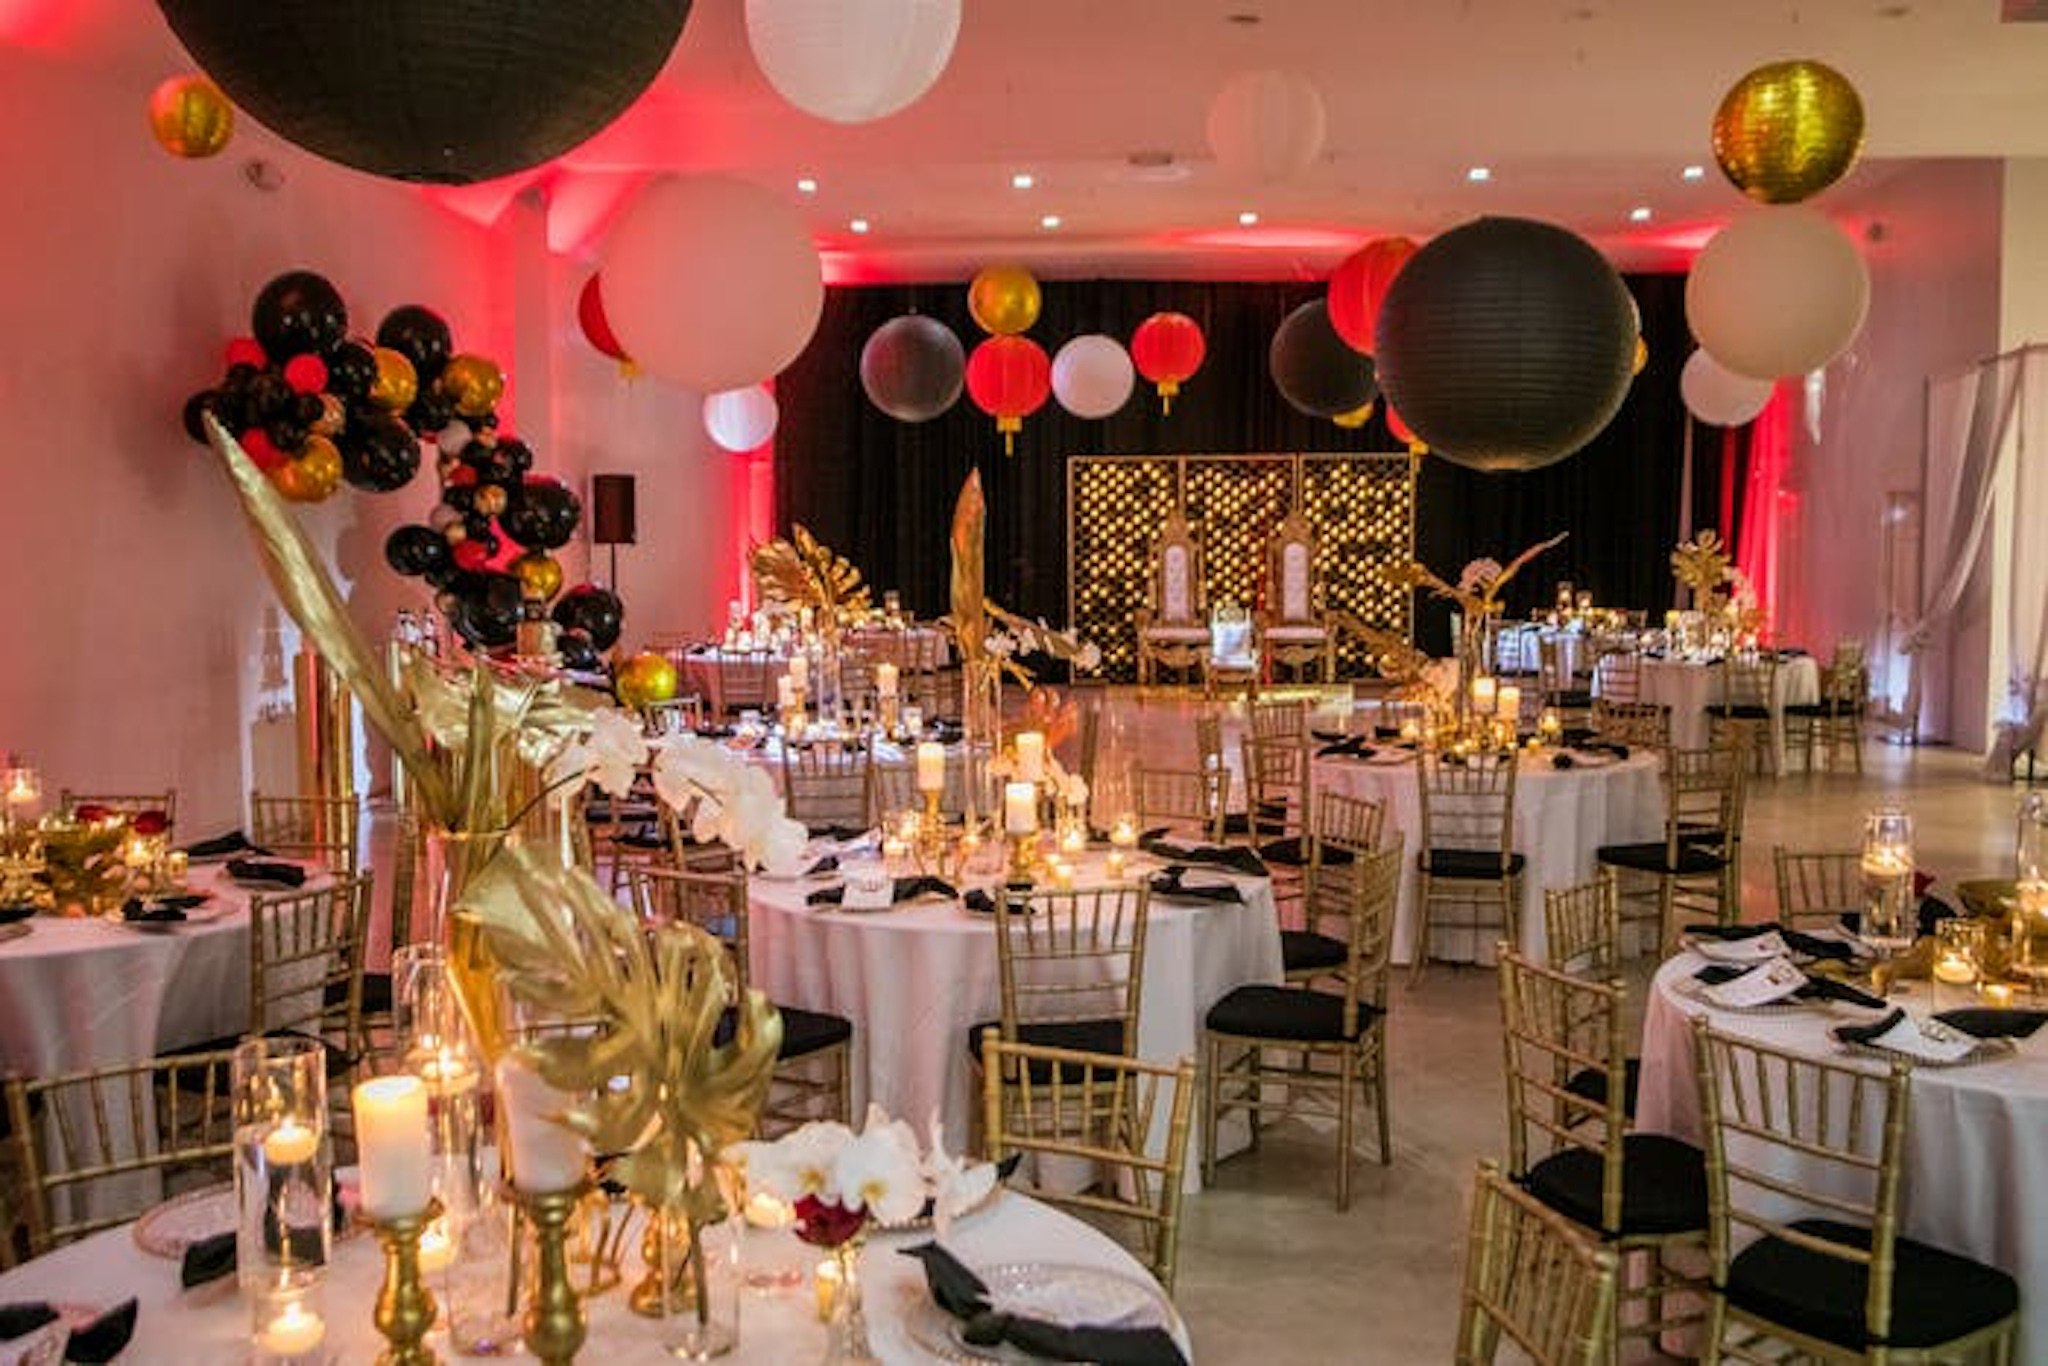 White venue in New York with gold, red and black decor accents